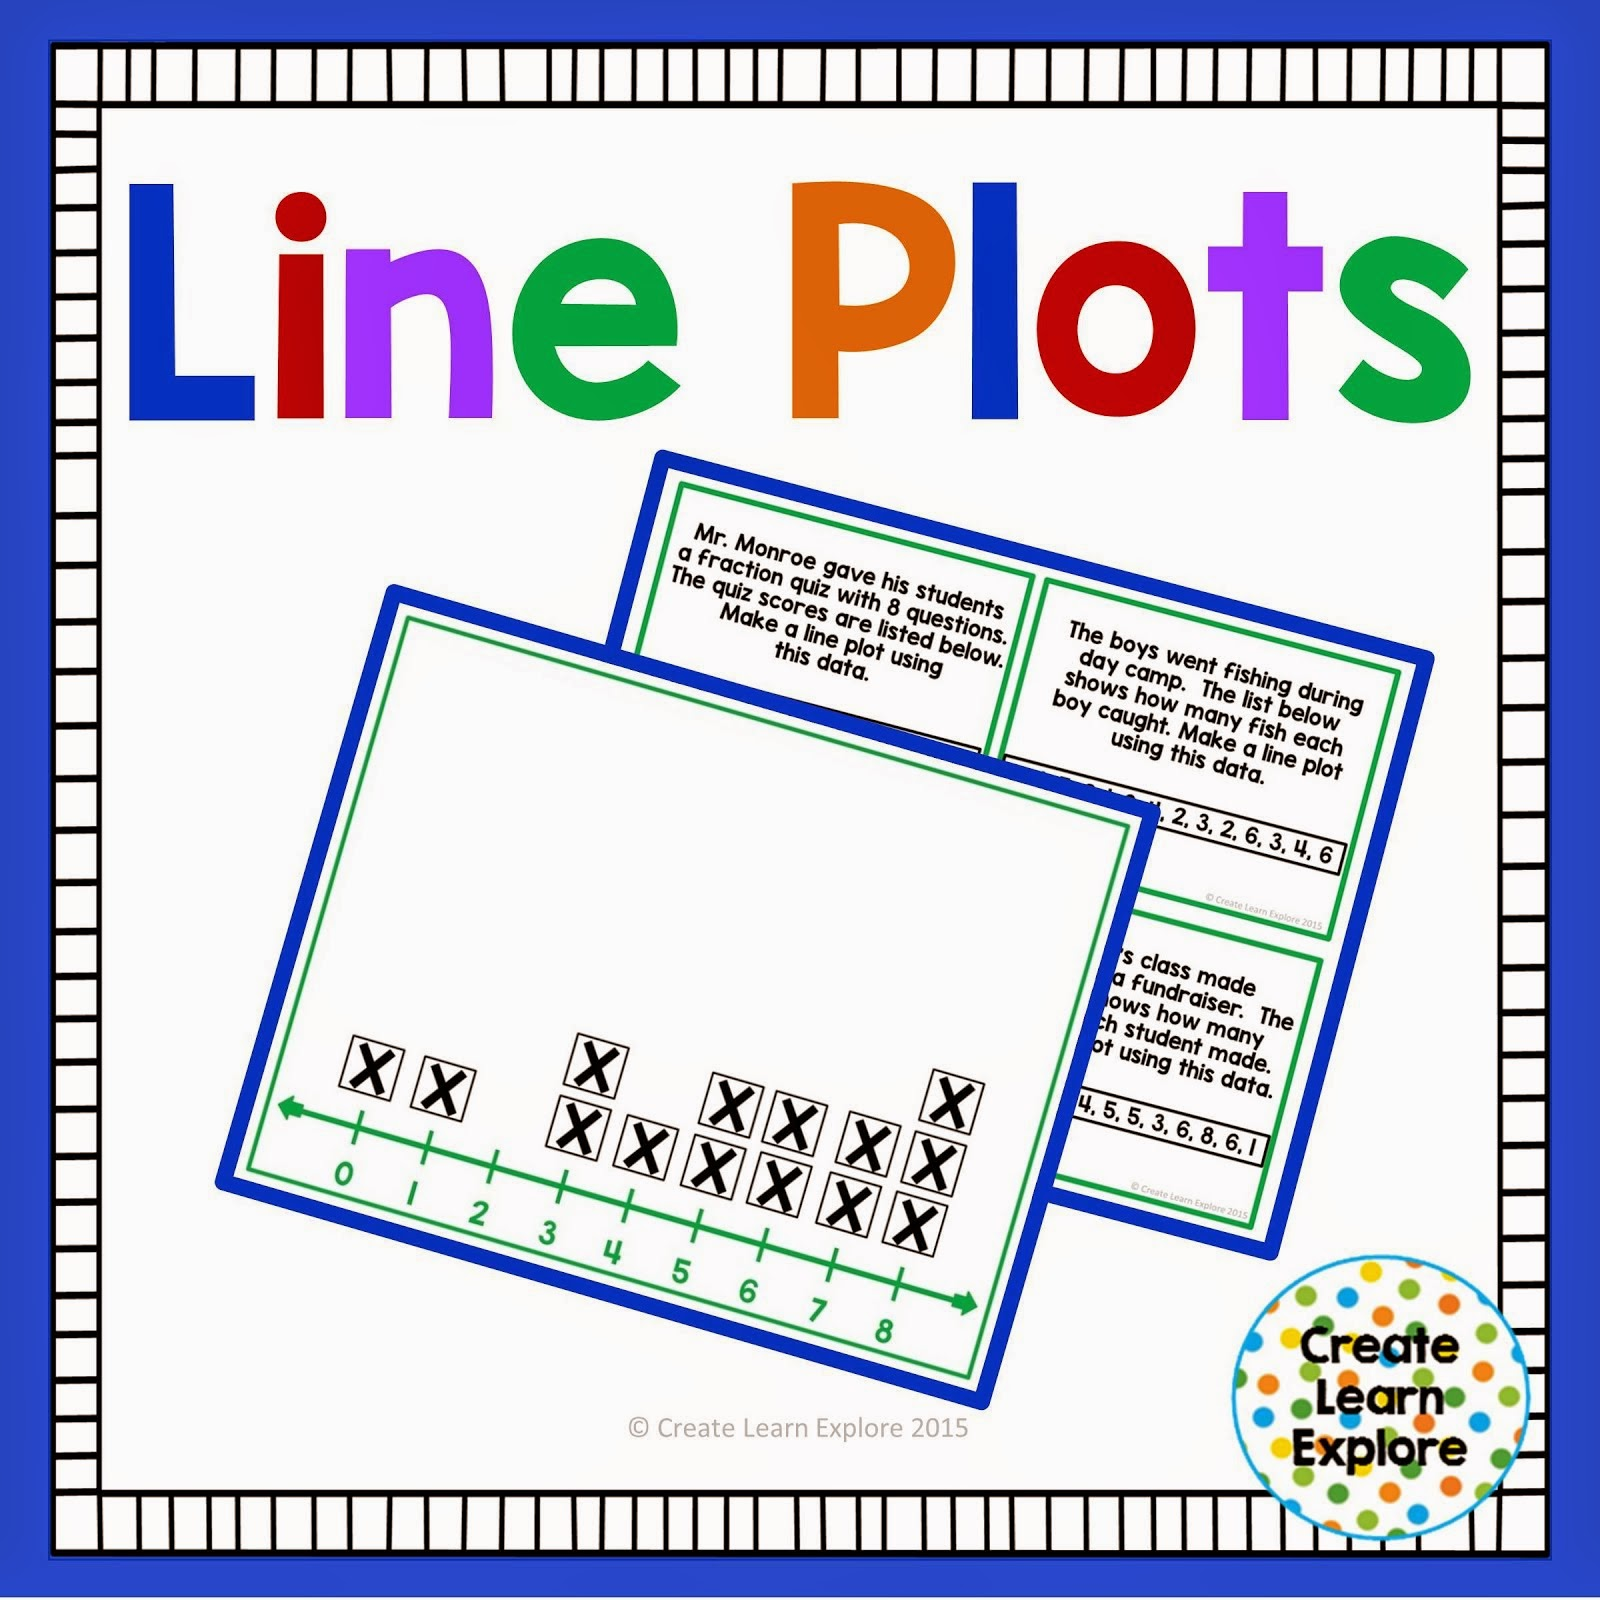 how to create a line plot